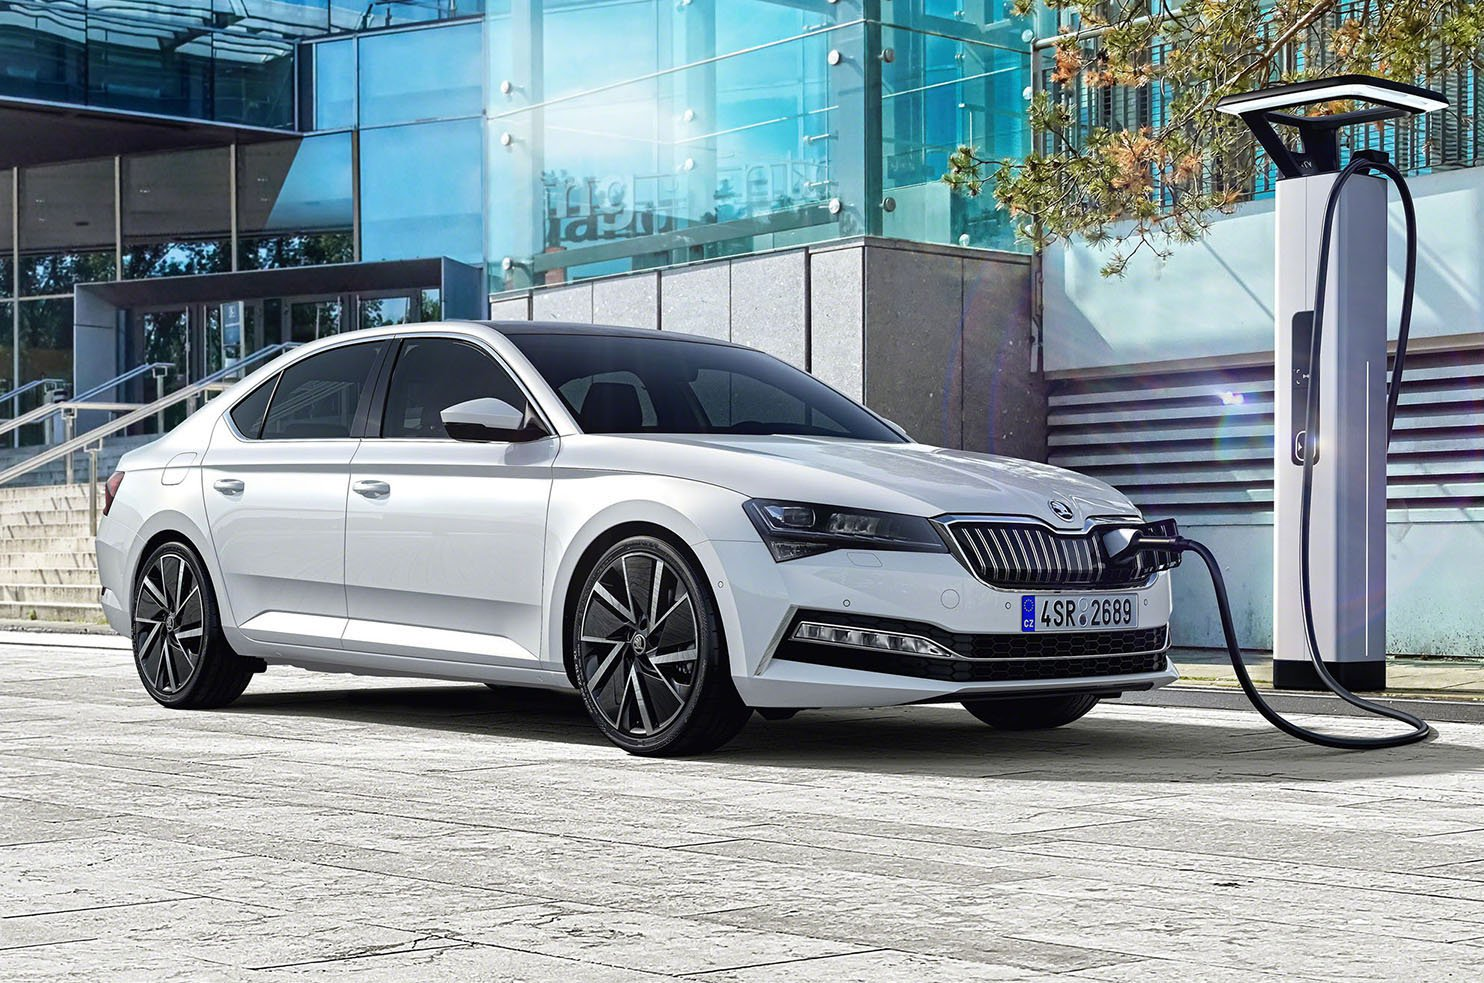 2020 Skoda Superb iV charging